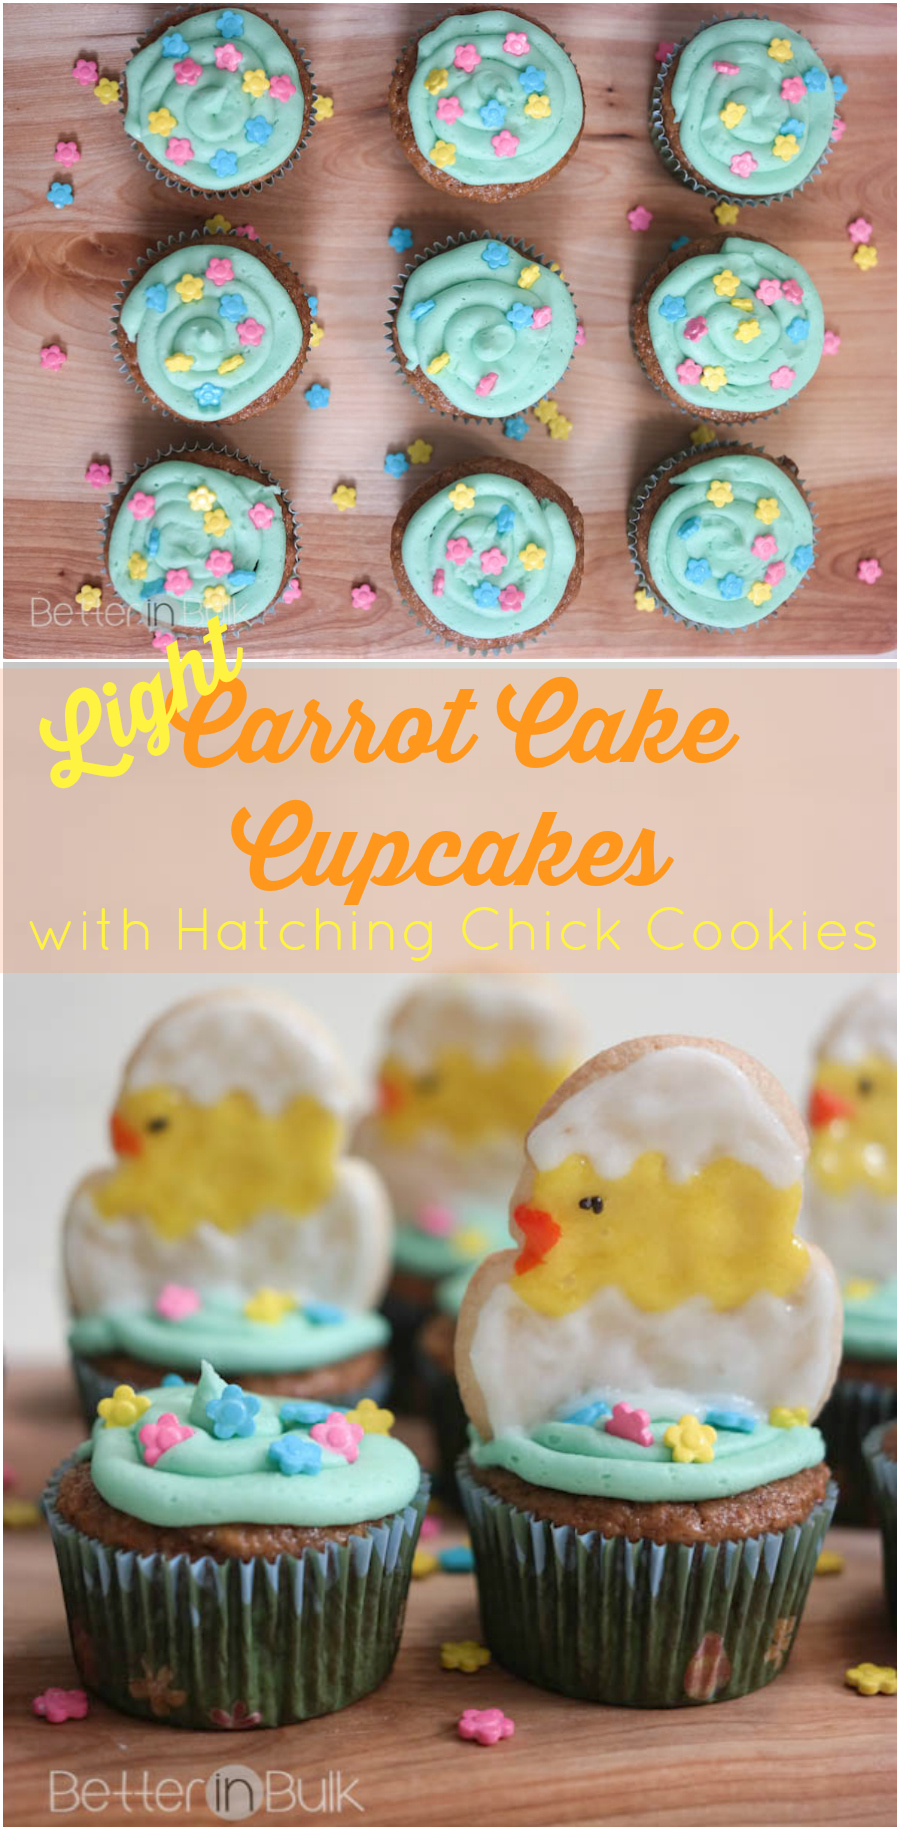 light carrot cake cupcakes